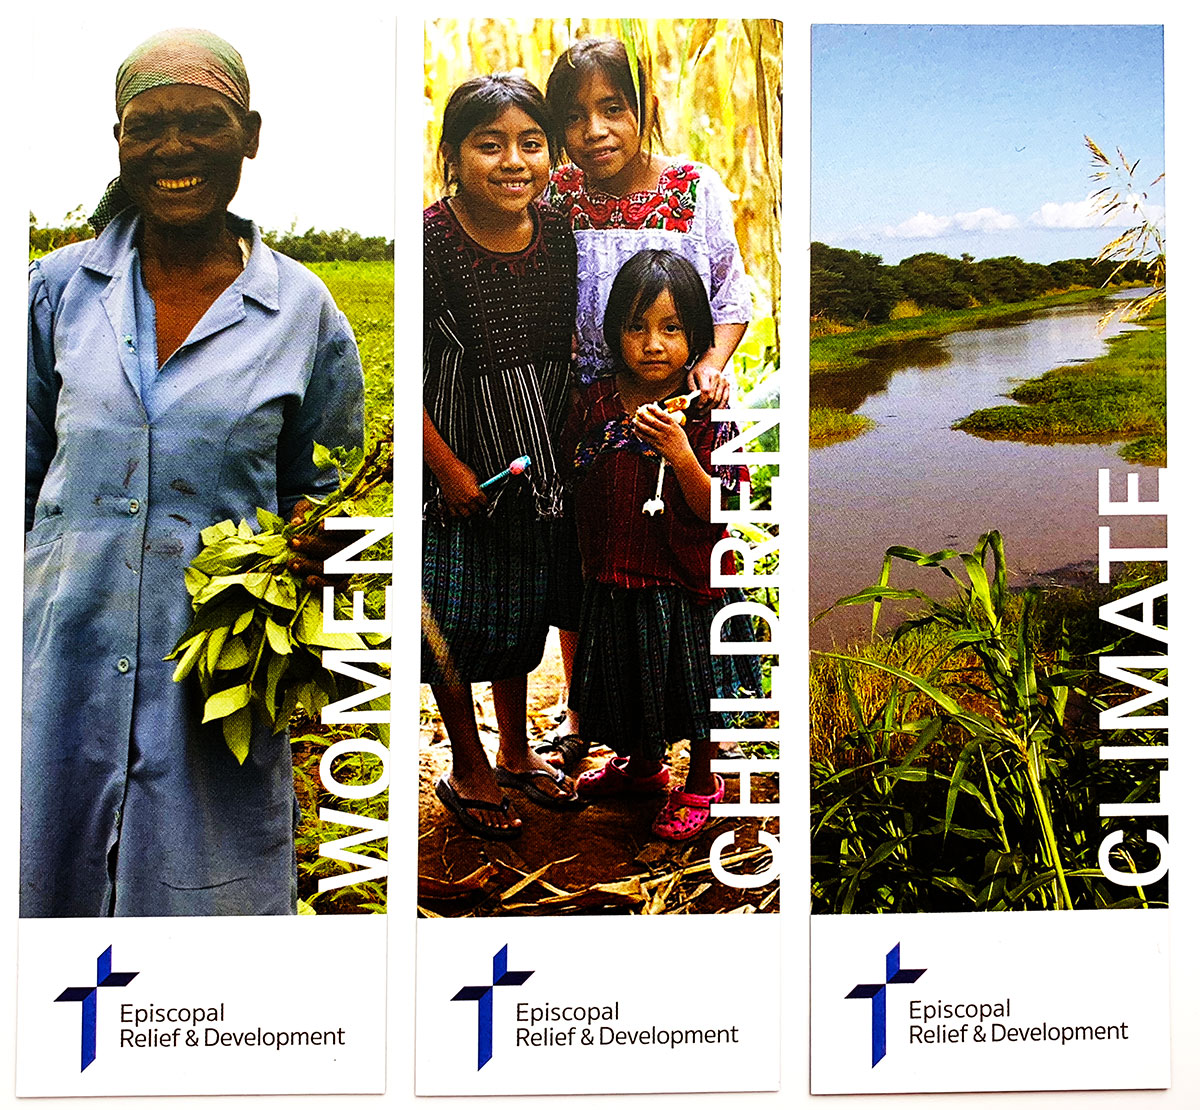 Episcopal Relief & Development Bookmarks